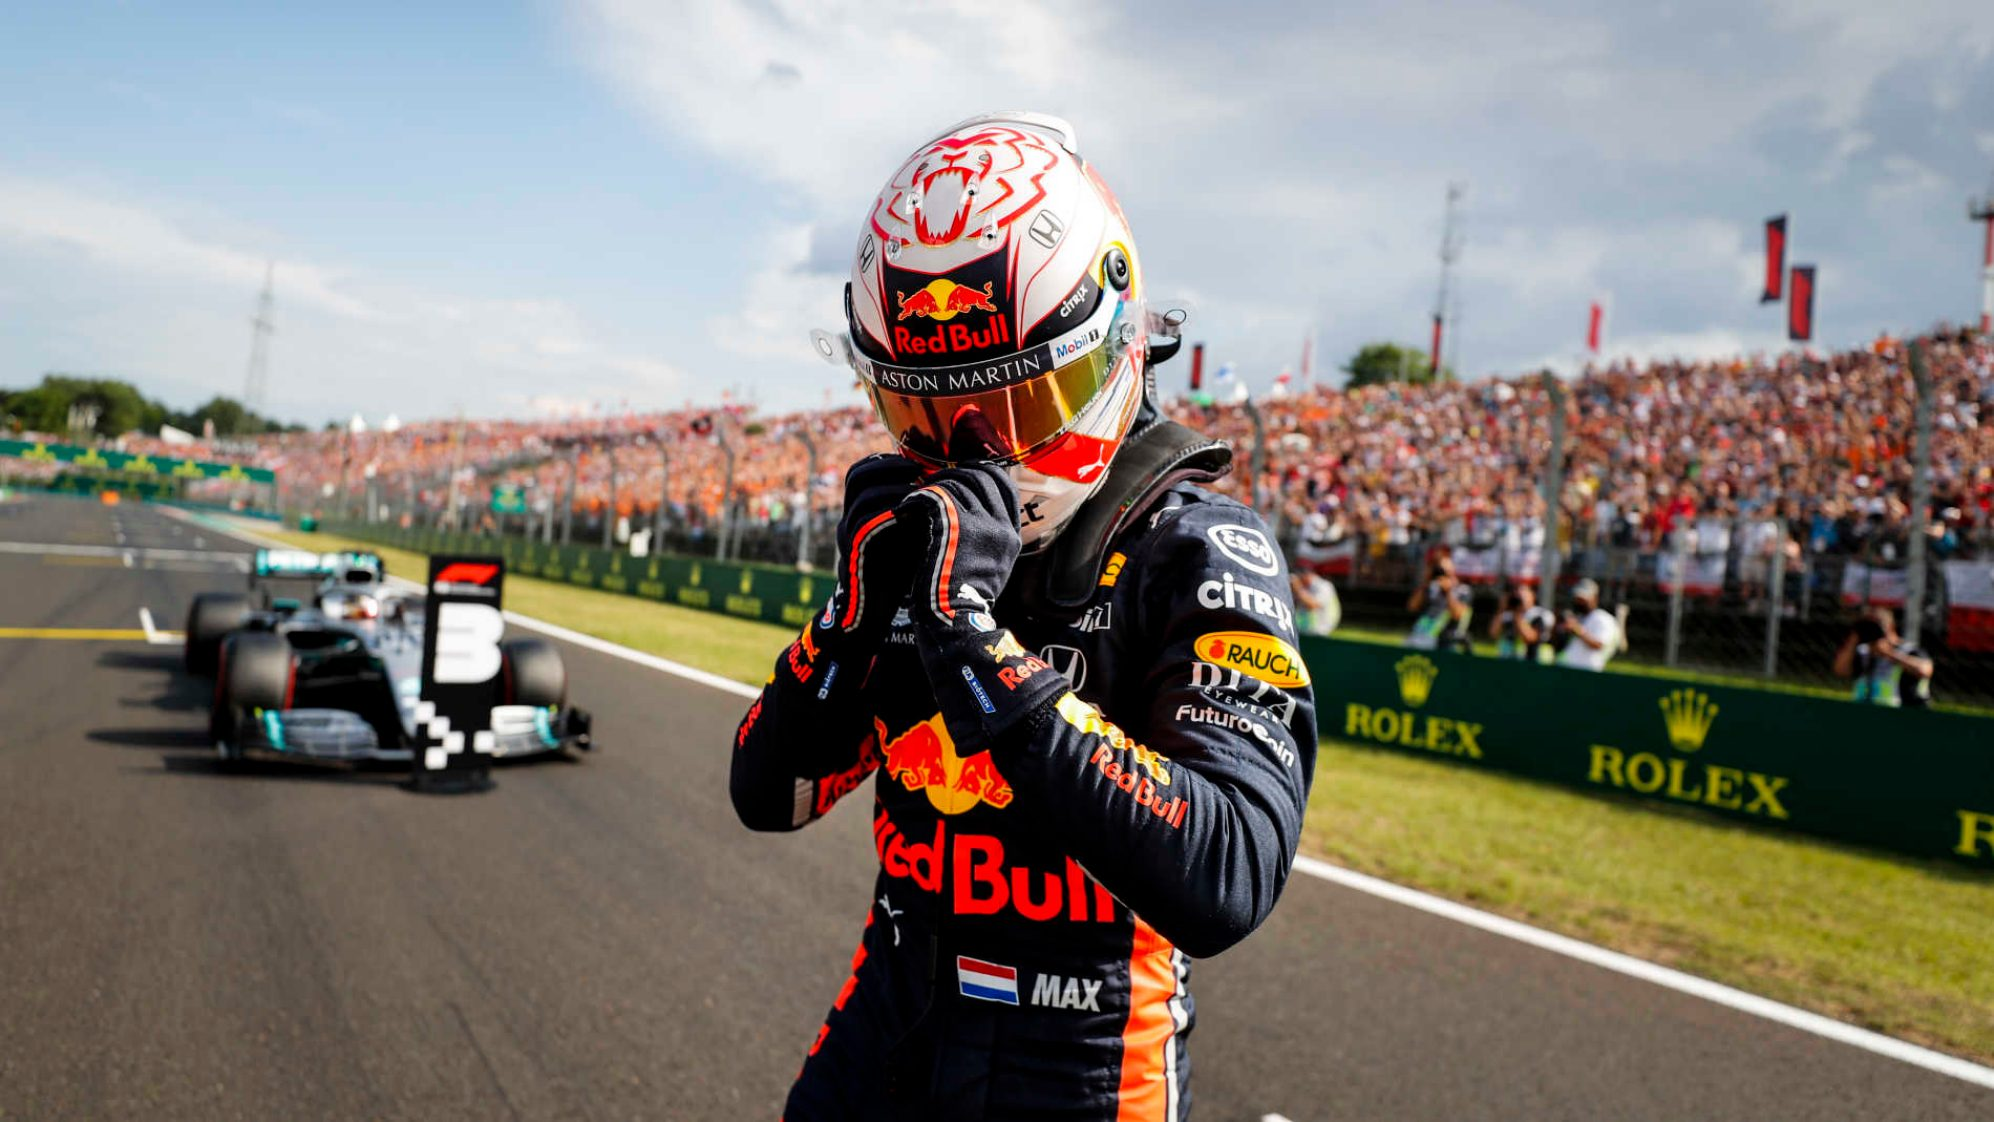 What To Watch For in the 2019 Hungarian Grand Prix